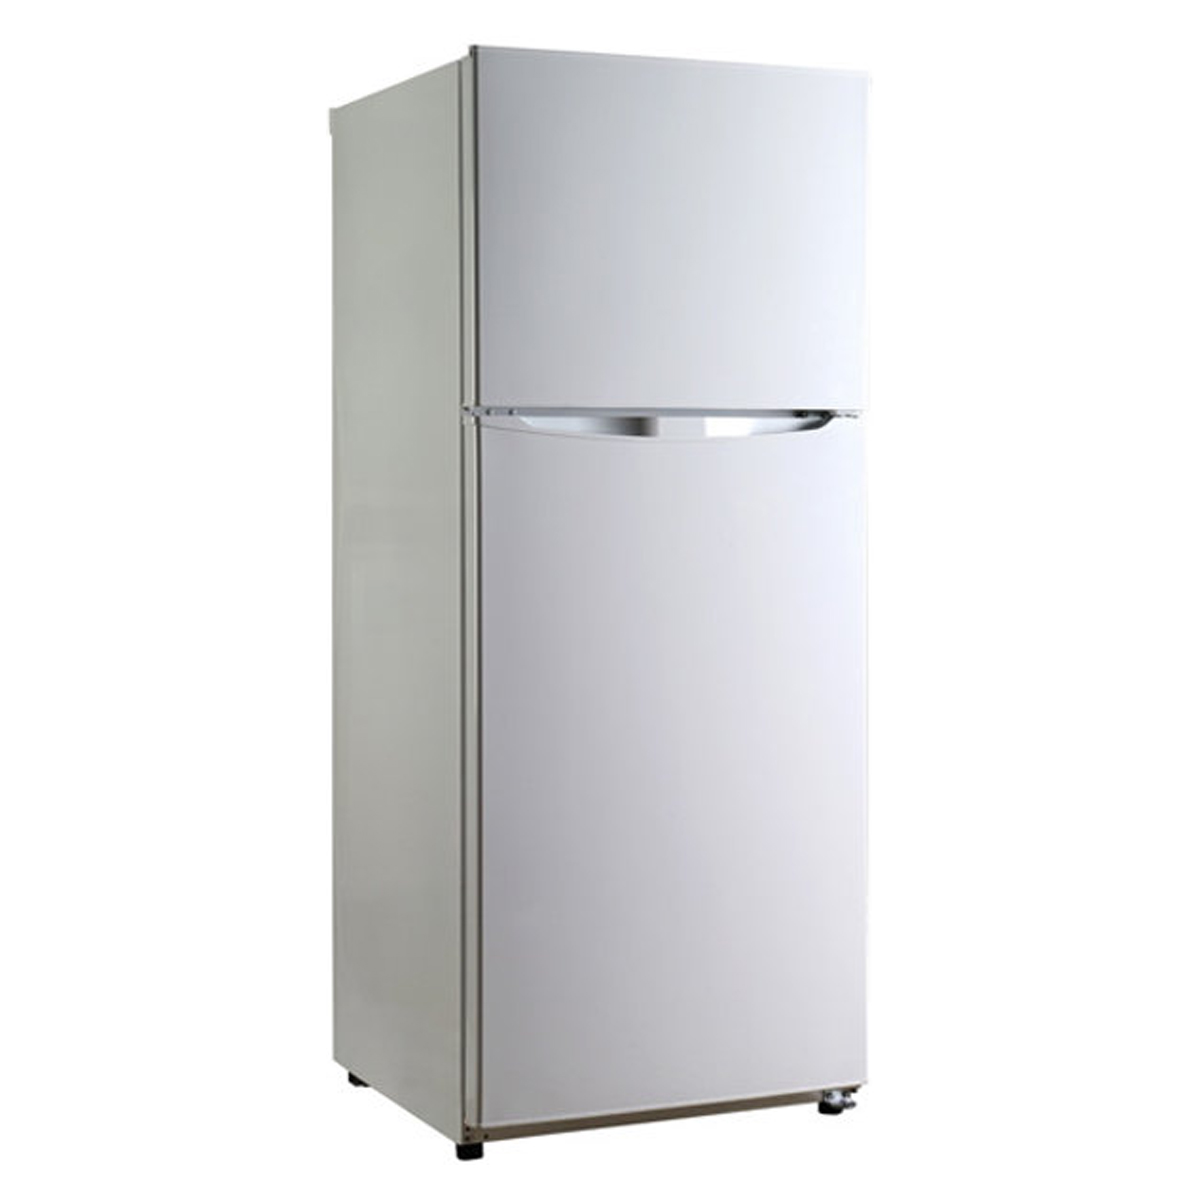 Esatto 400L Top Mount Fridge RTM400X